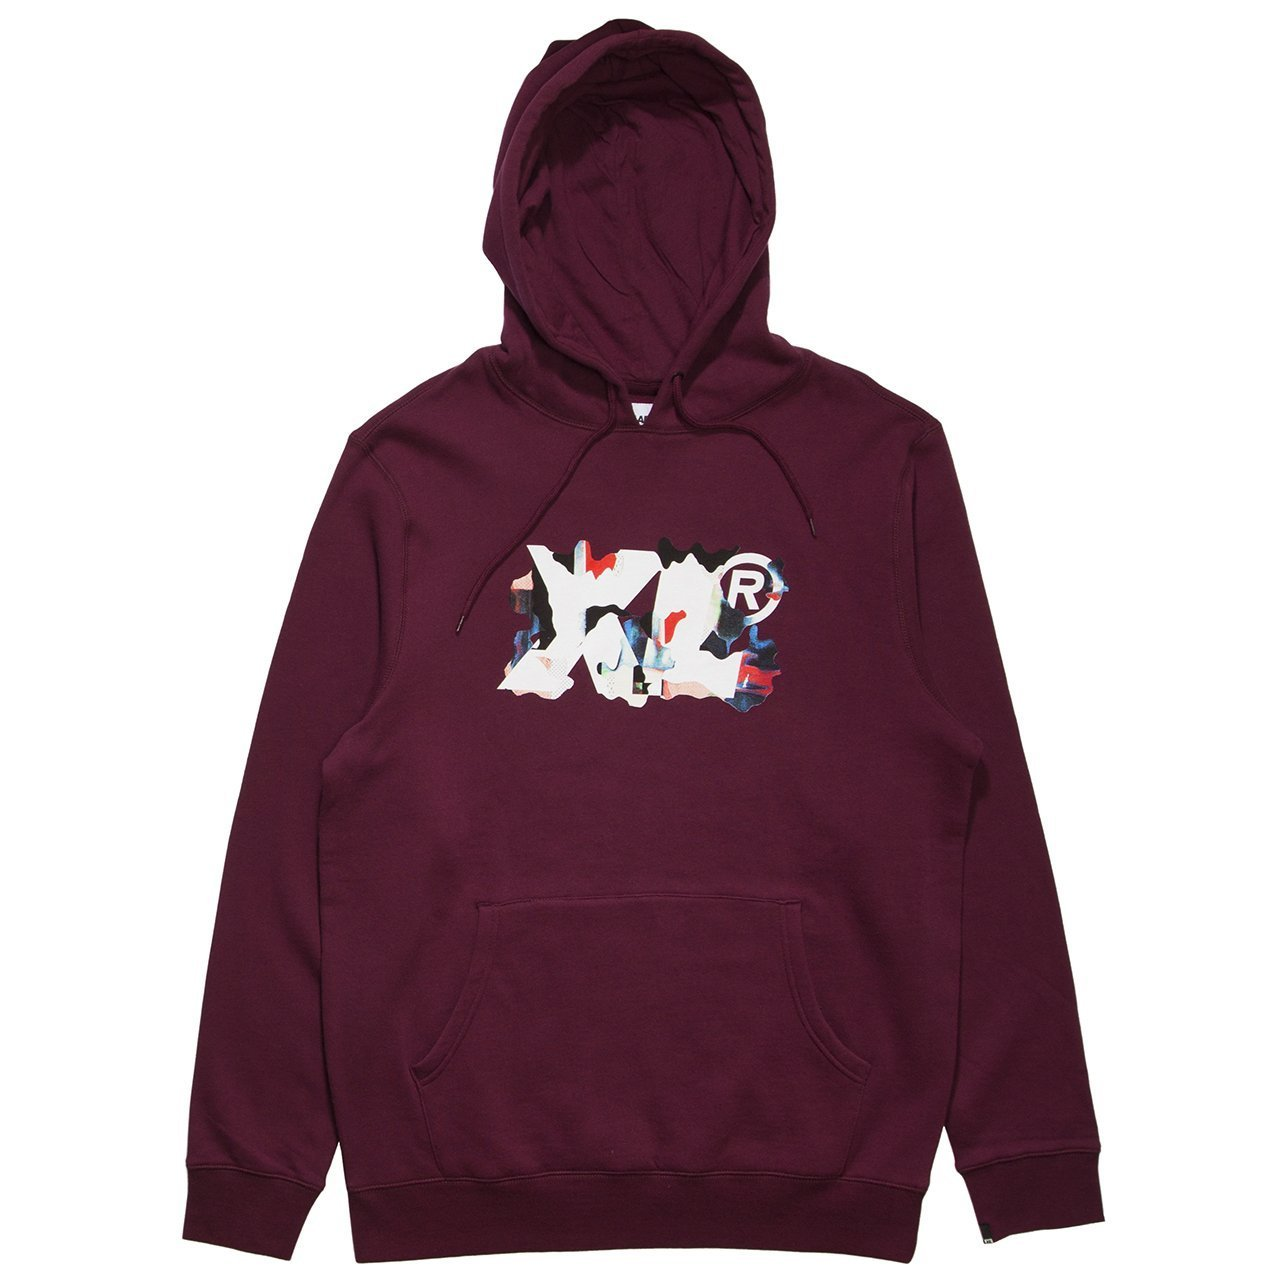 IMPRESSION PULLOVER HOODIE